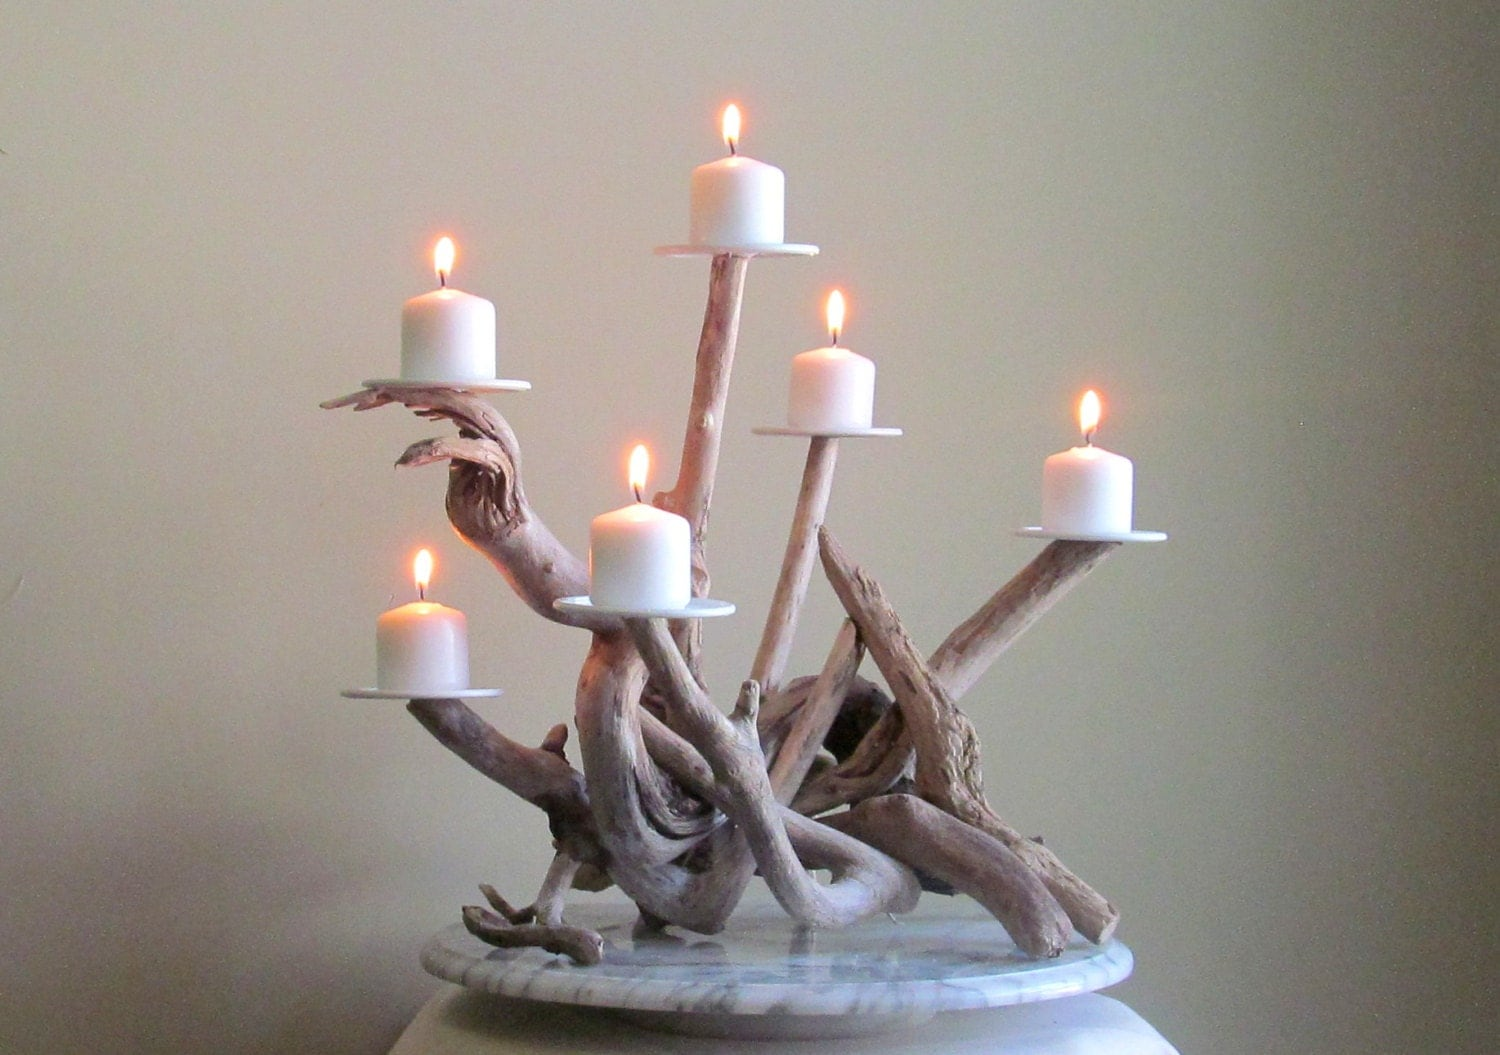 driftwood six candles candelabra wedding centerpiece table